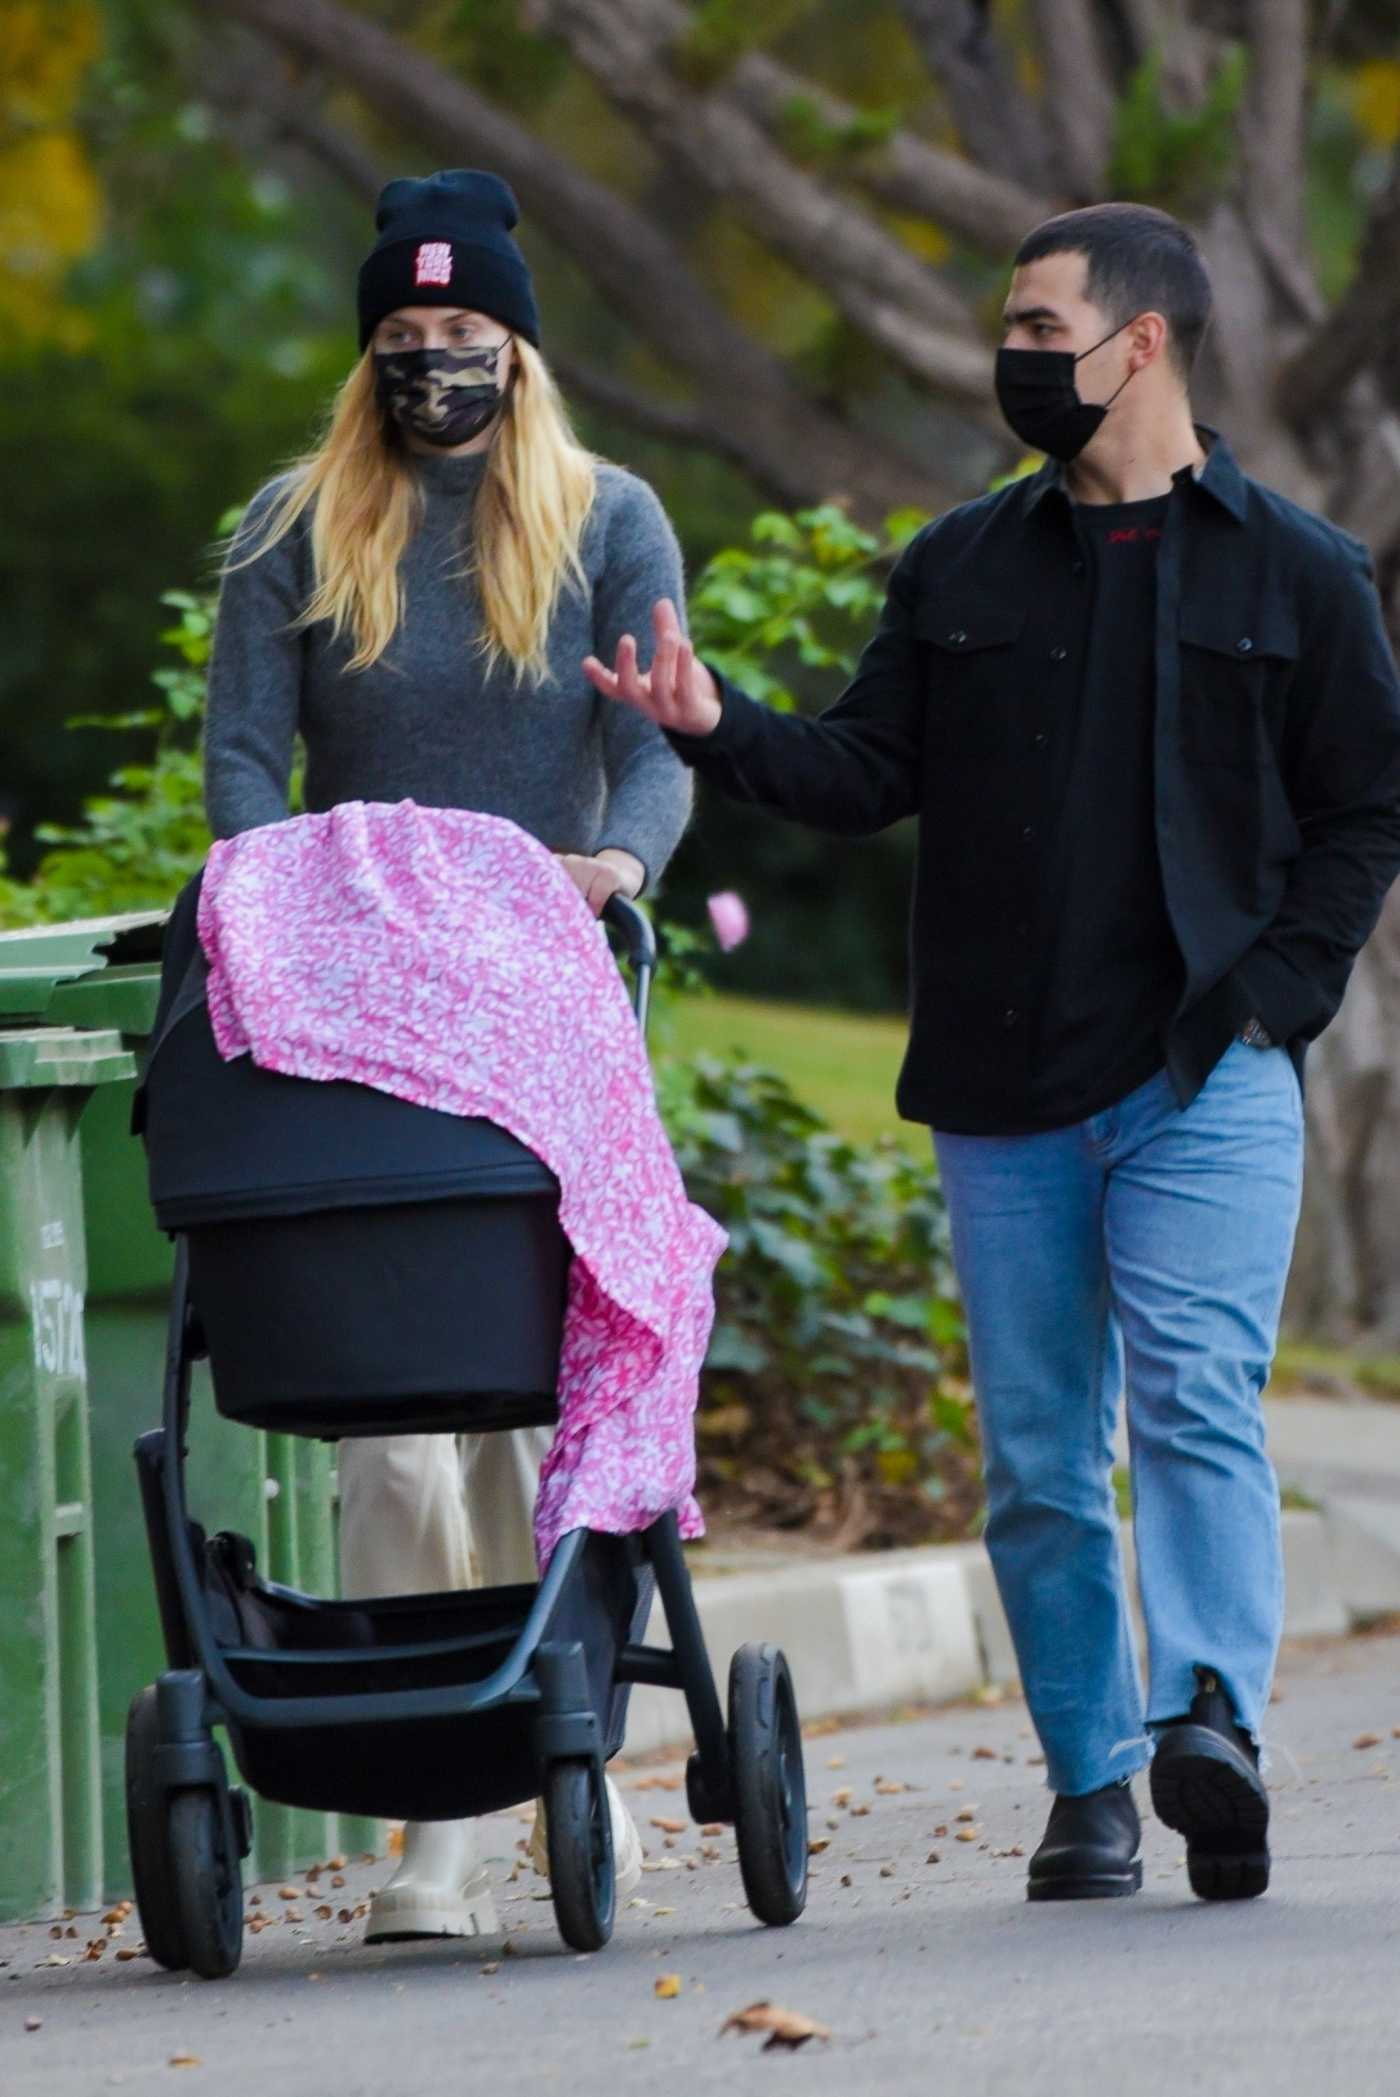 Sophie Turner in a Black Knit Hat Steps Out for a Thanksgiving Day Walk with Daughter Willa and Joe Jonas in Los Angeles 11/25/2020